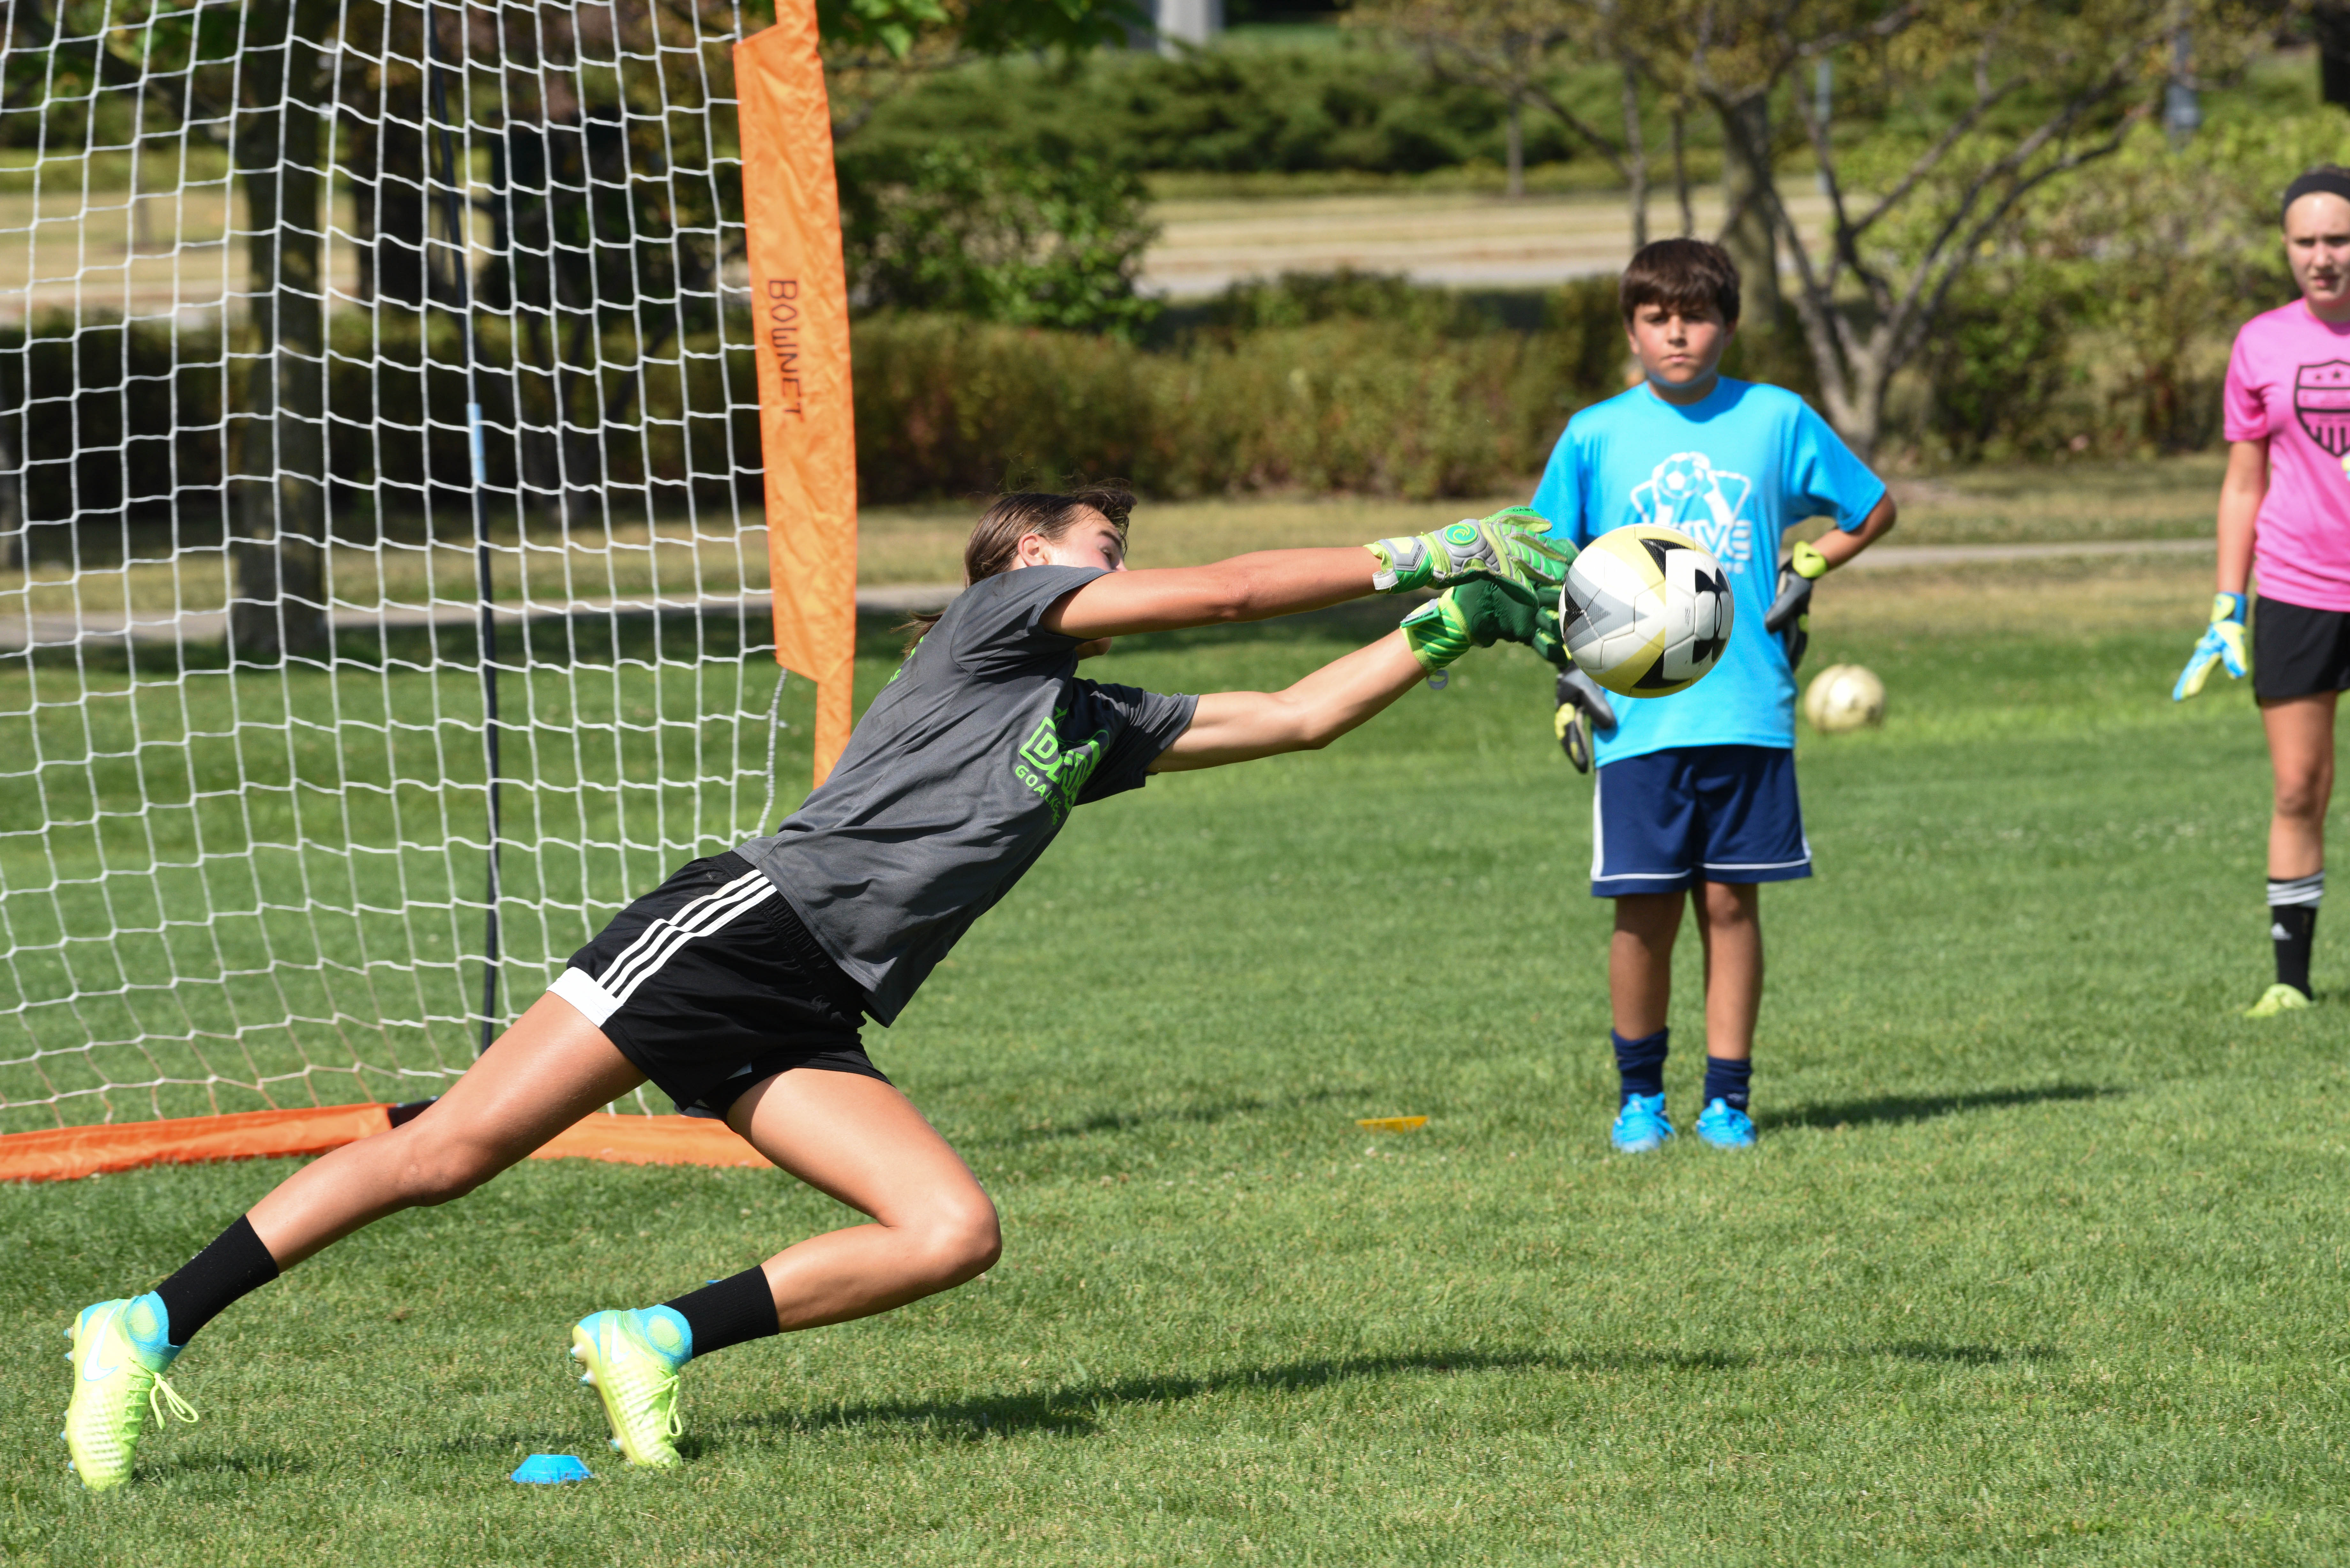 Summer Camp Drive GK Diving